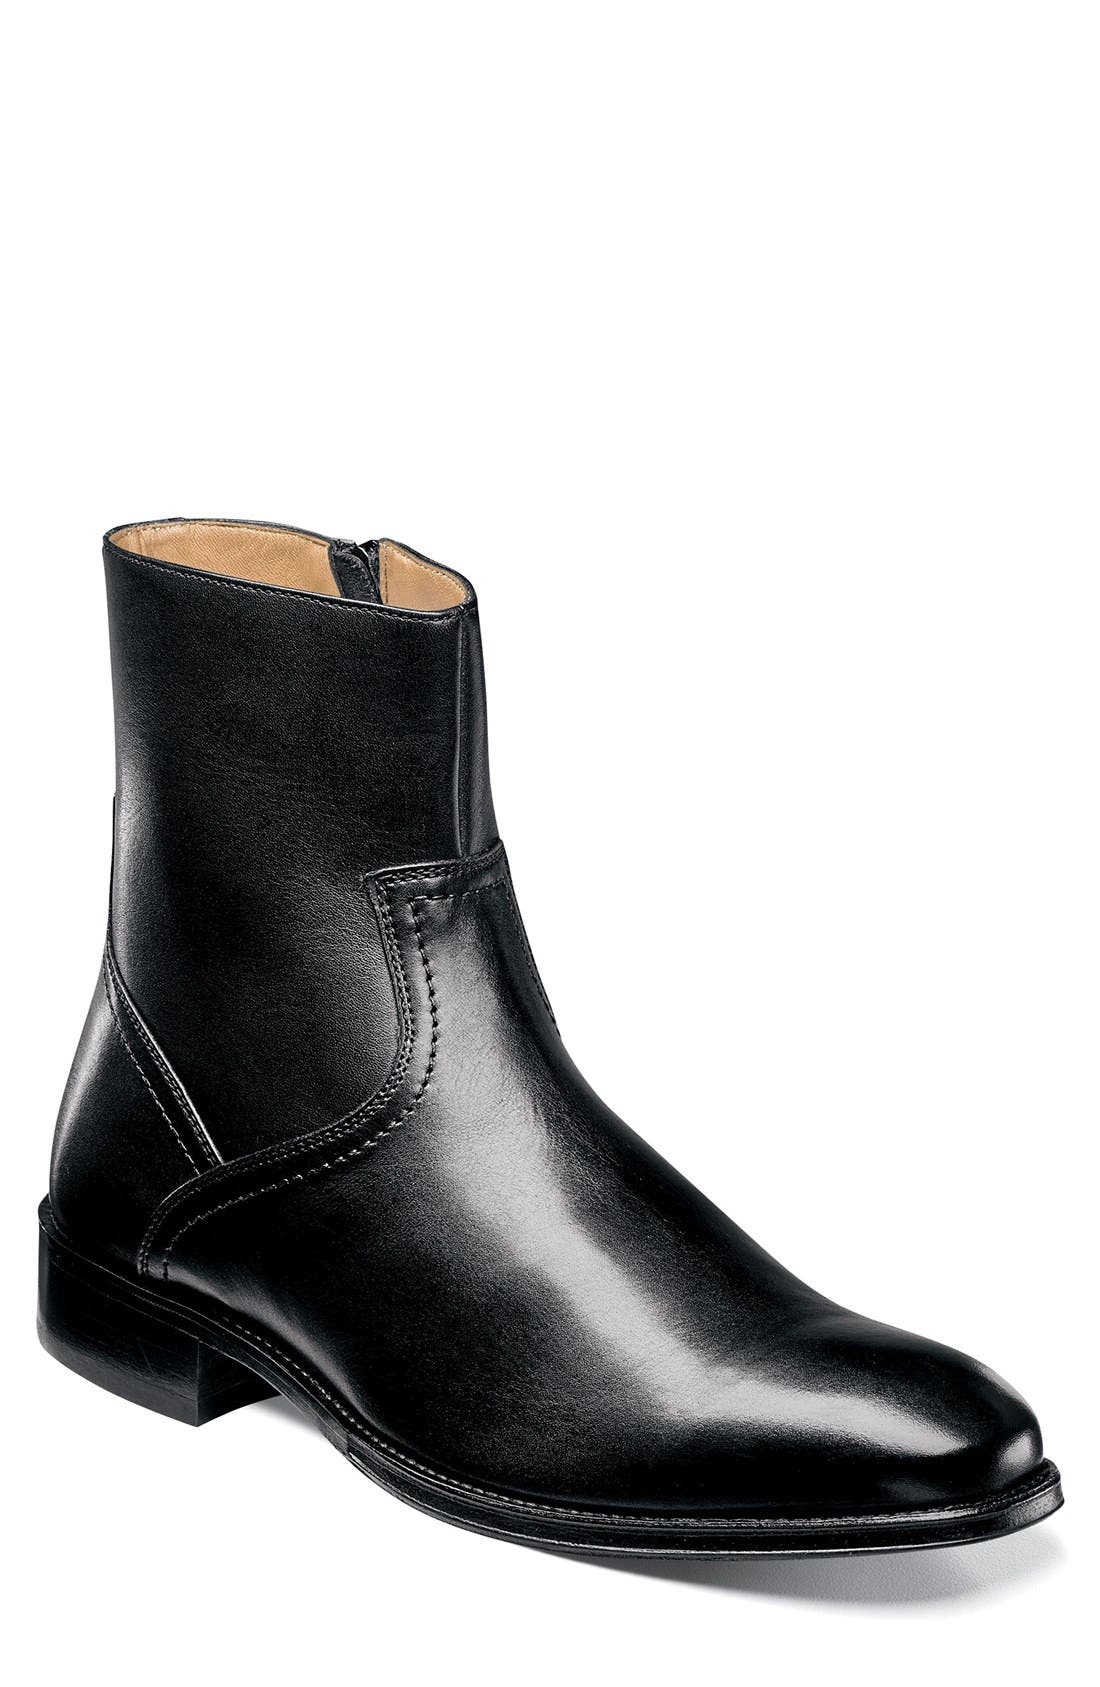 FLORSHEIM Capital Zip Boot